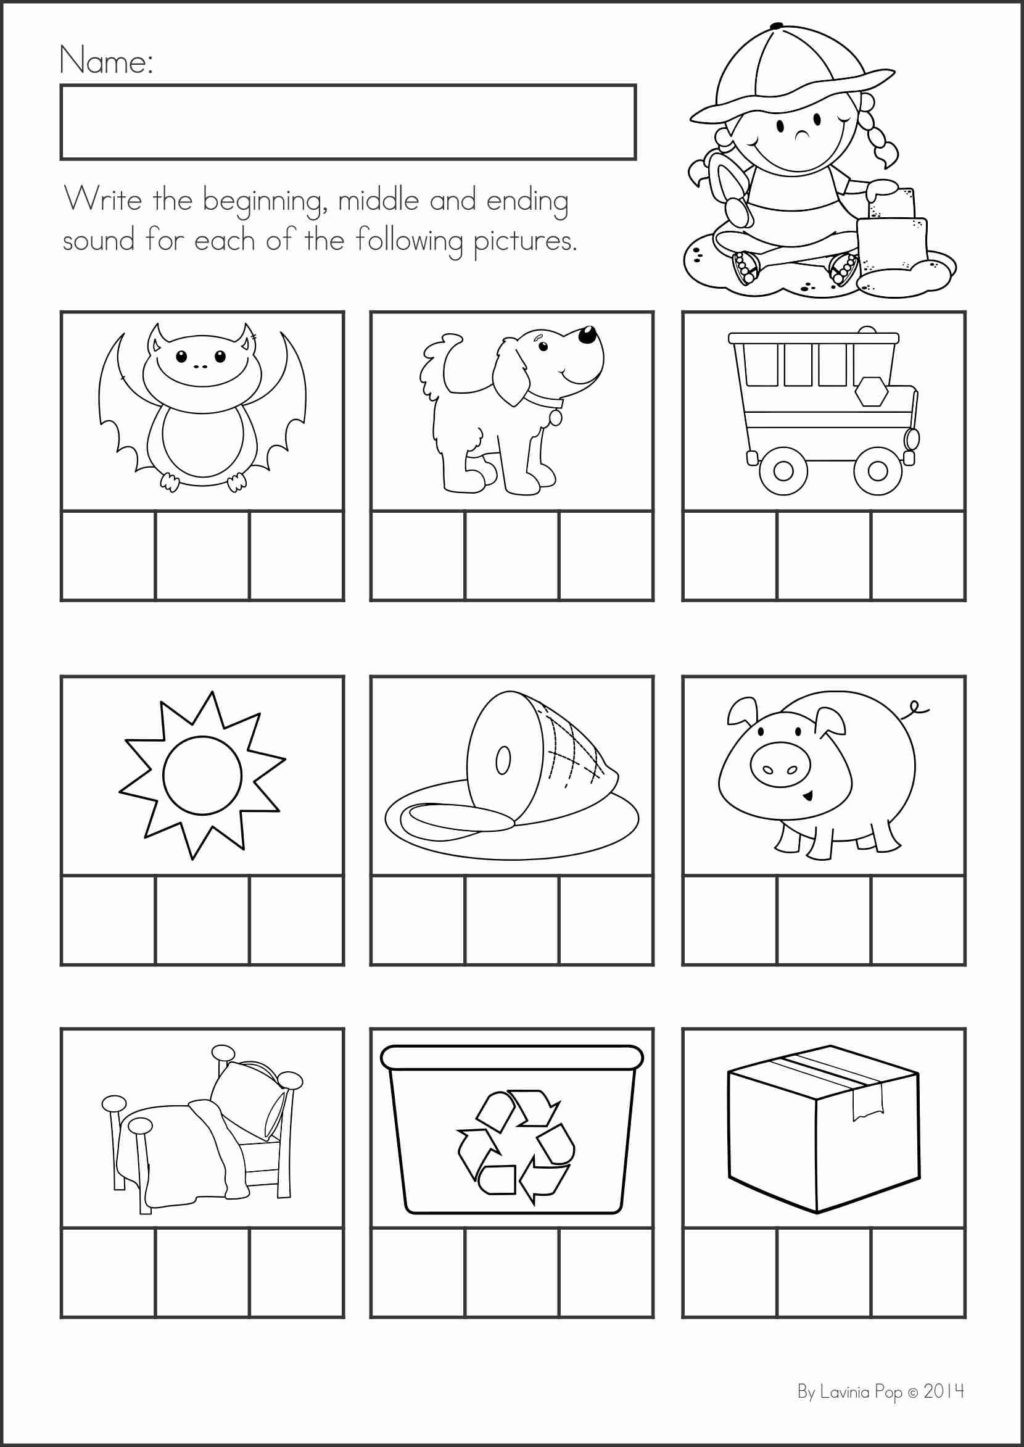 unique writing cvc words worksheet educational pages forgarten free printable math worksheets alphabet 1024x1447